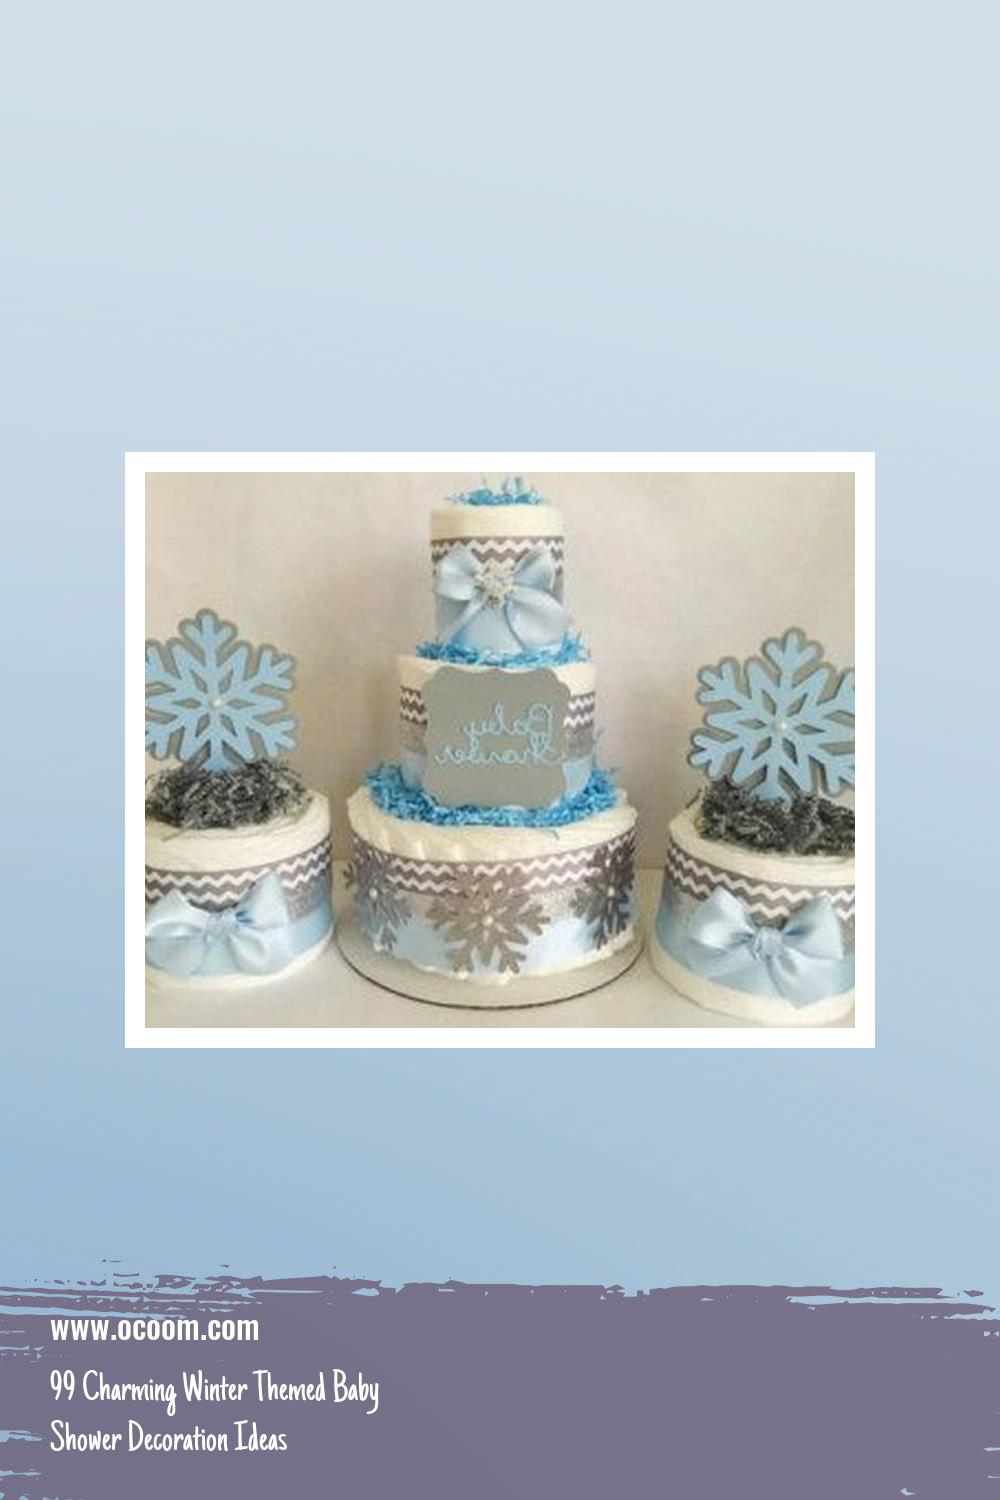 99 Charming Winter Themed Baby Shower Decoration Ideas 27